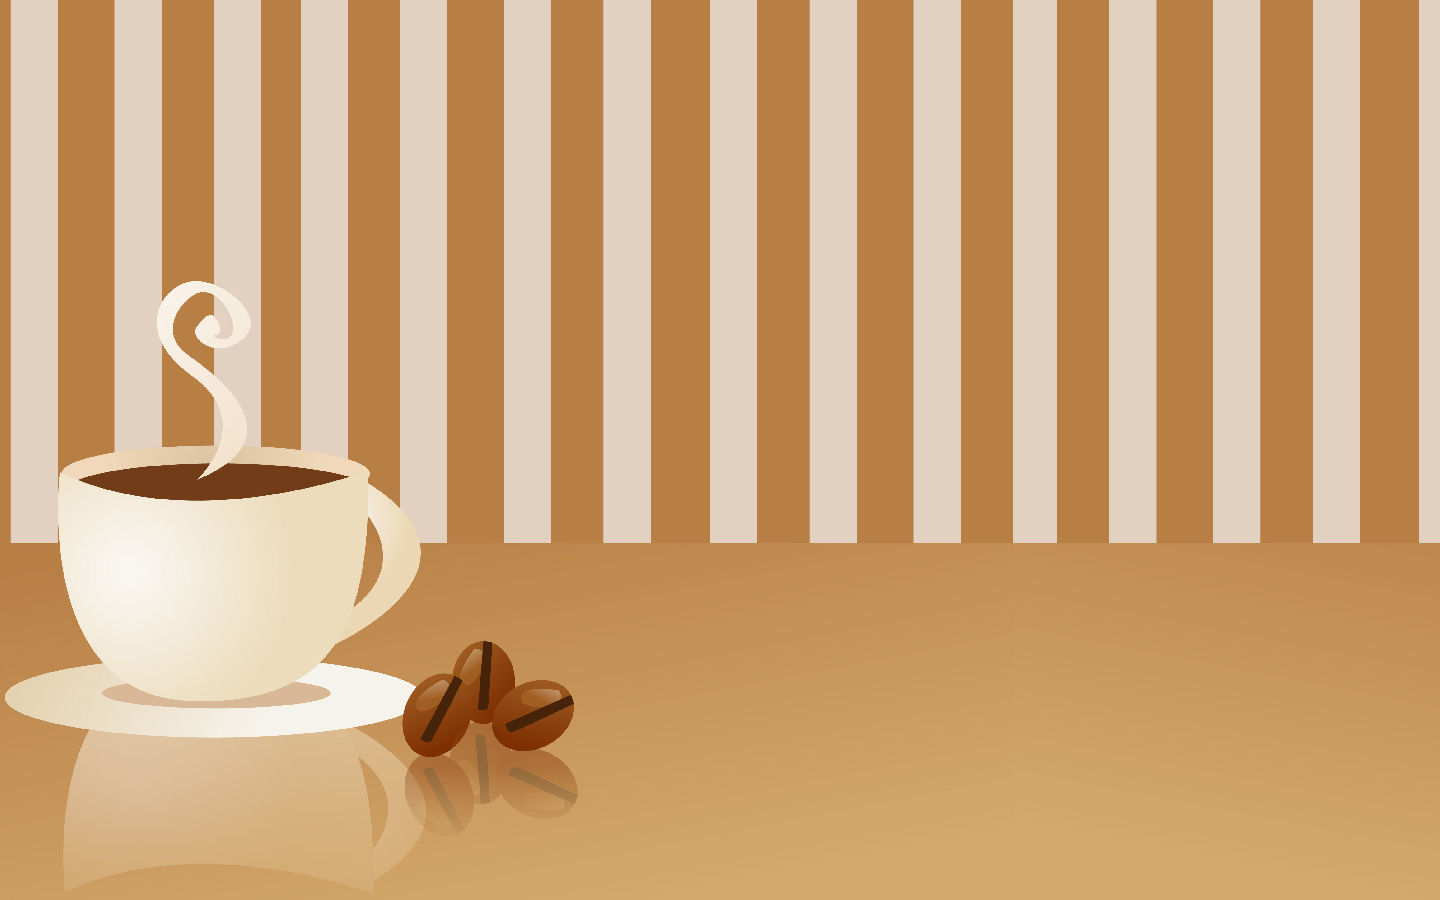 coffee background wallpaper wallpapersafari starbucks logo vector 2017 starbucks logo vector free